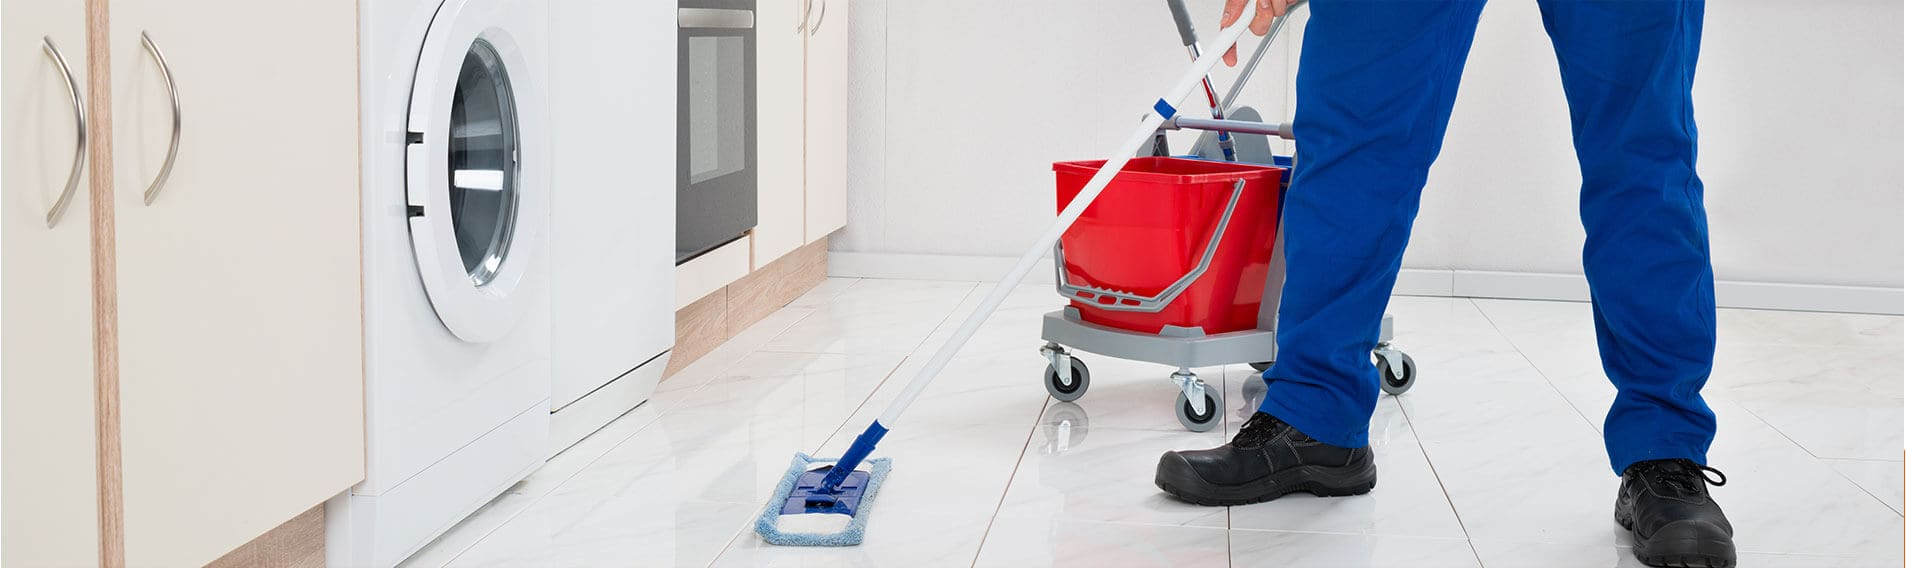 gold coast tile cleaning parklane tile and grout cleaning parklane cleaning services has over 20 years of combined experience and has grown into one of the most respected s in the gold coast tile and grout